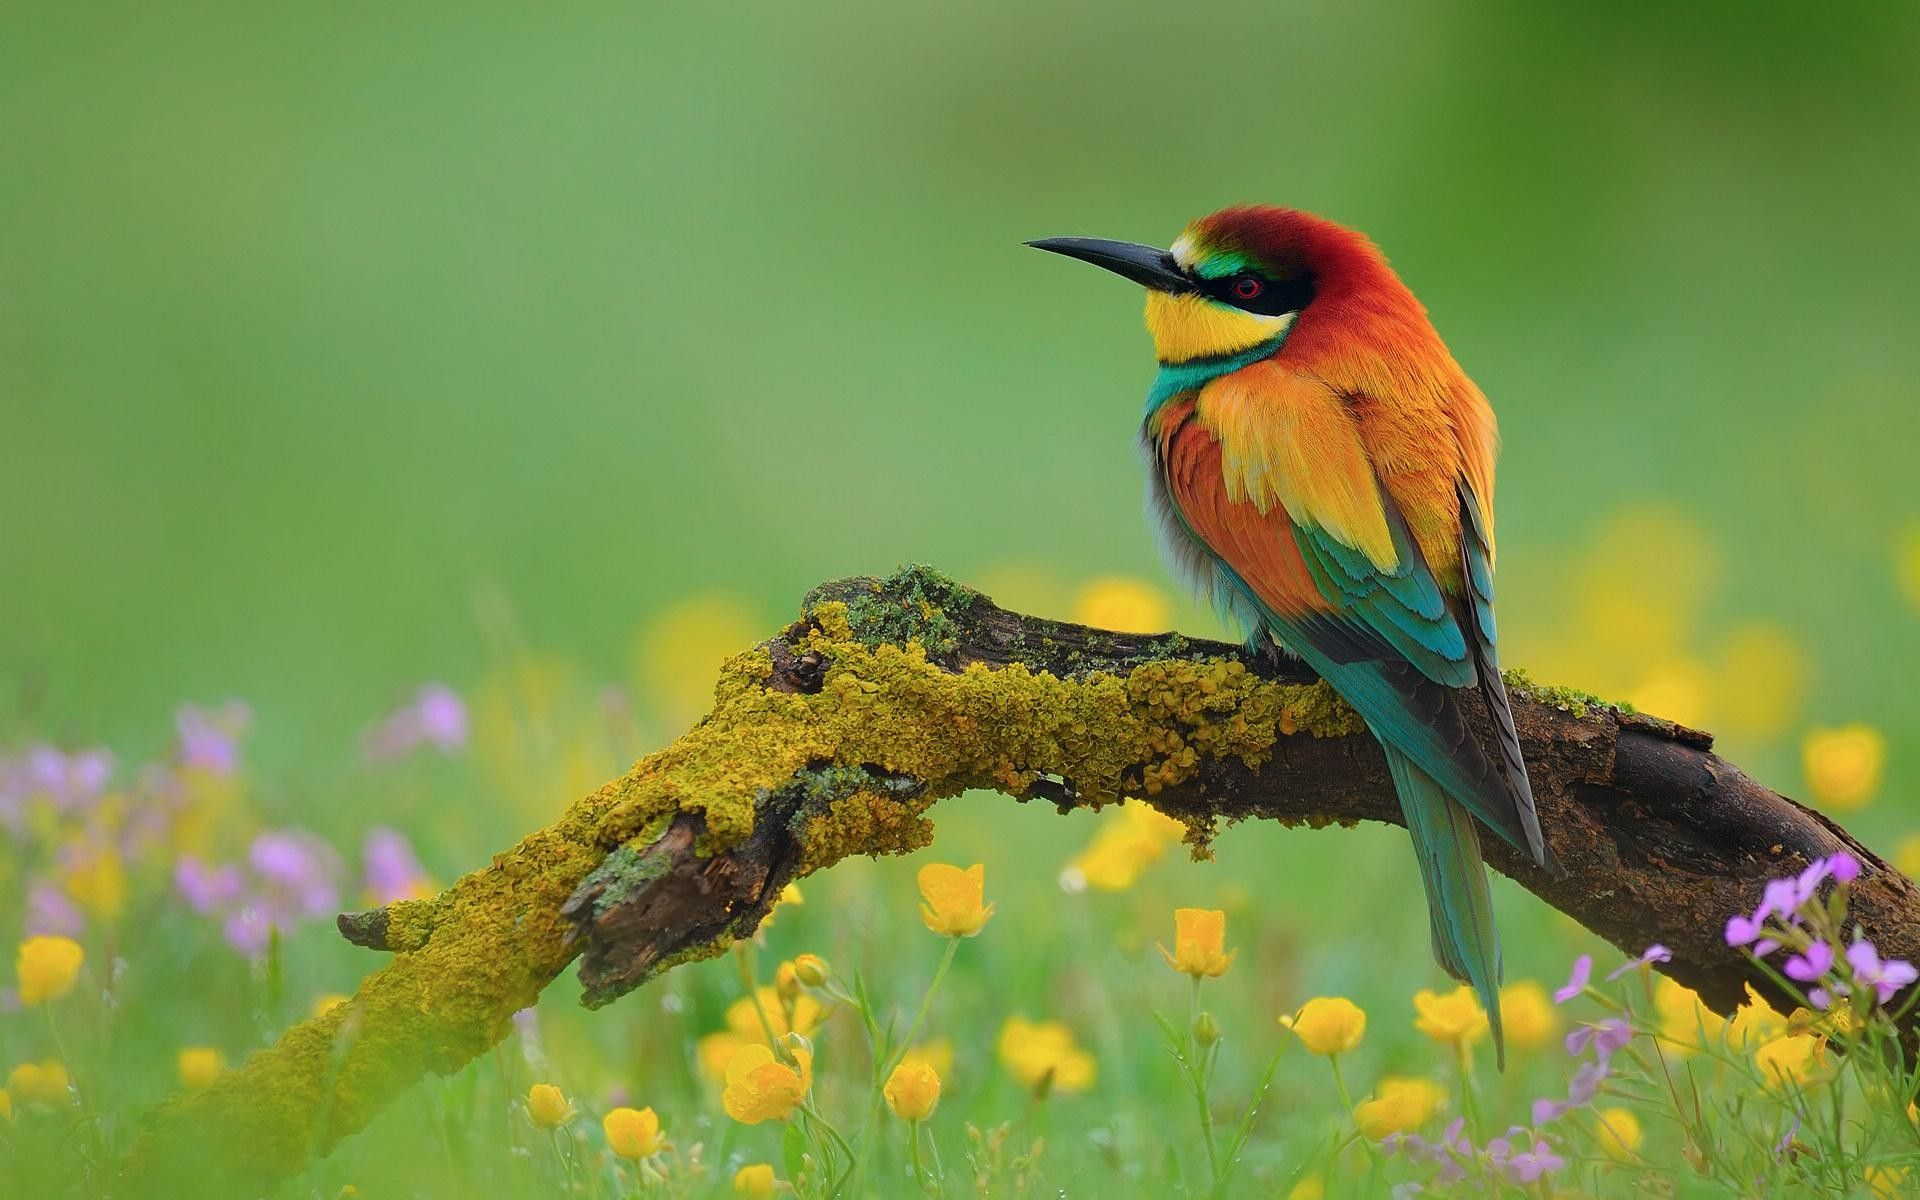 Birds Gorgeous Colorful Bird Birds Nature Animals Hd Wallpapers